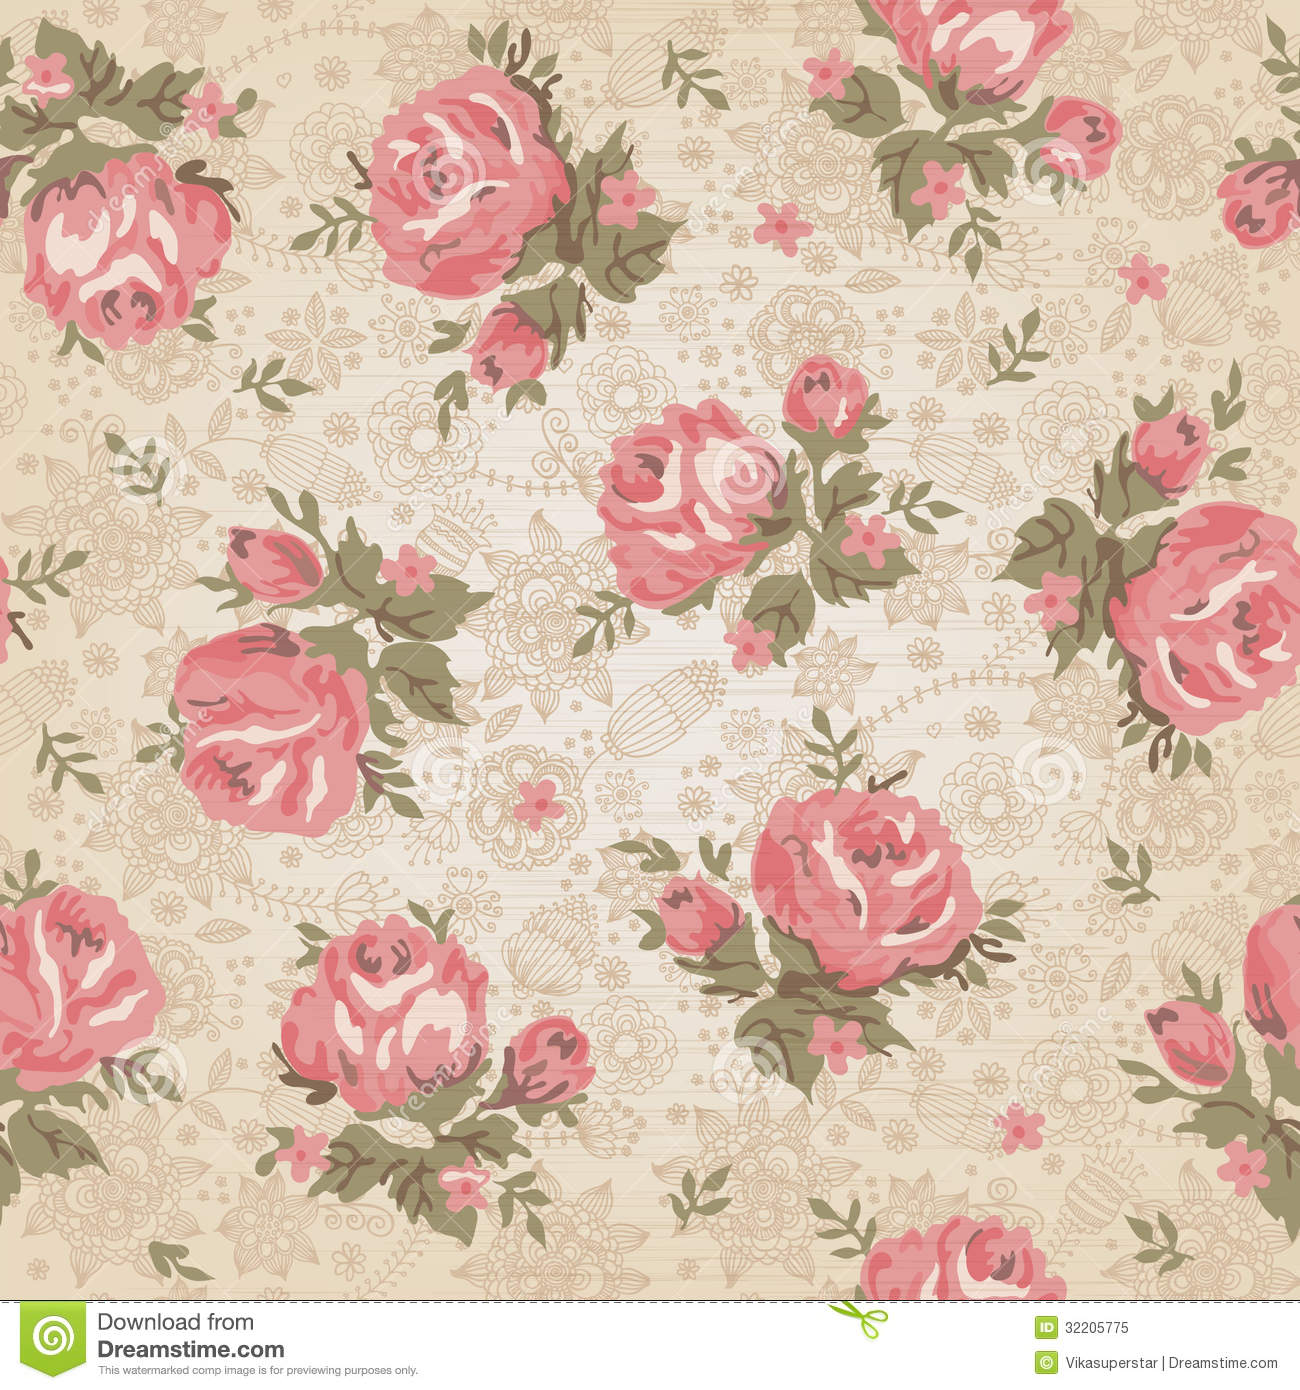 Floral Pattern Stock Photos, Images, & Pictures - 696,051 Images